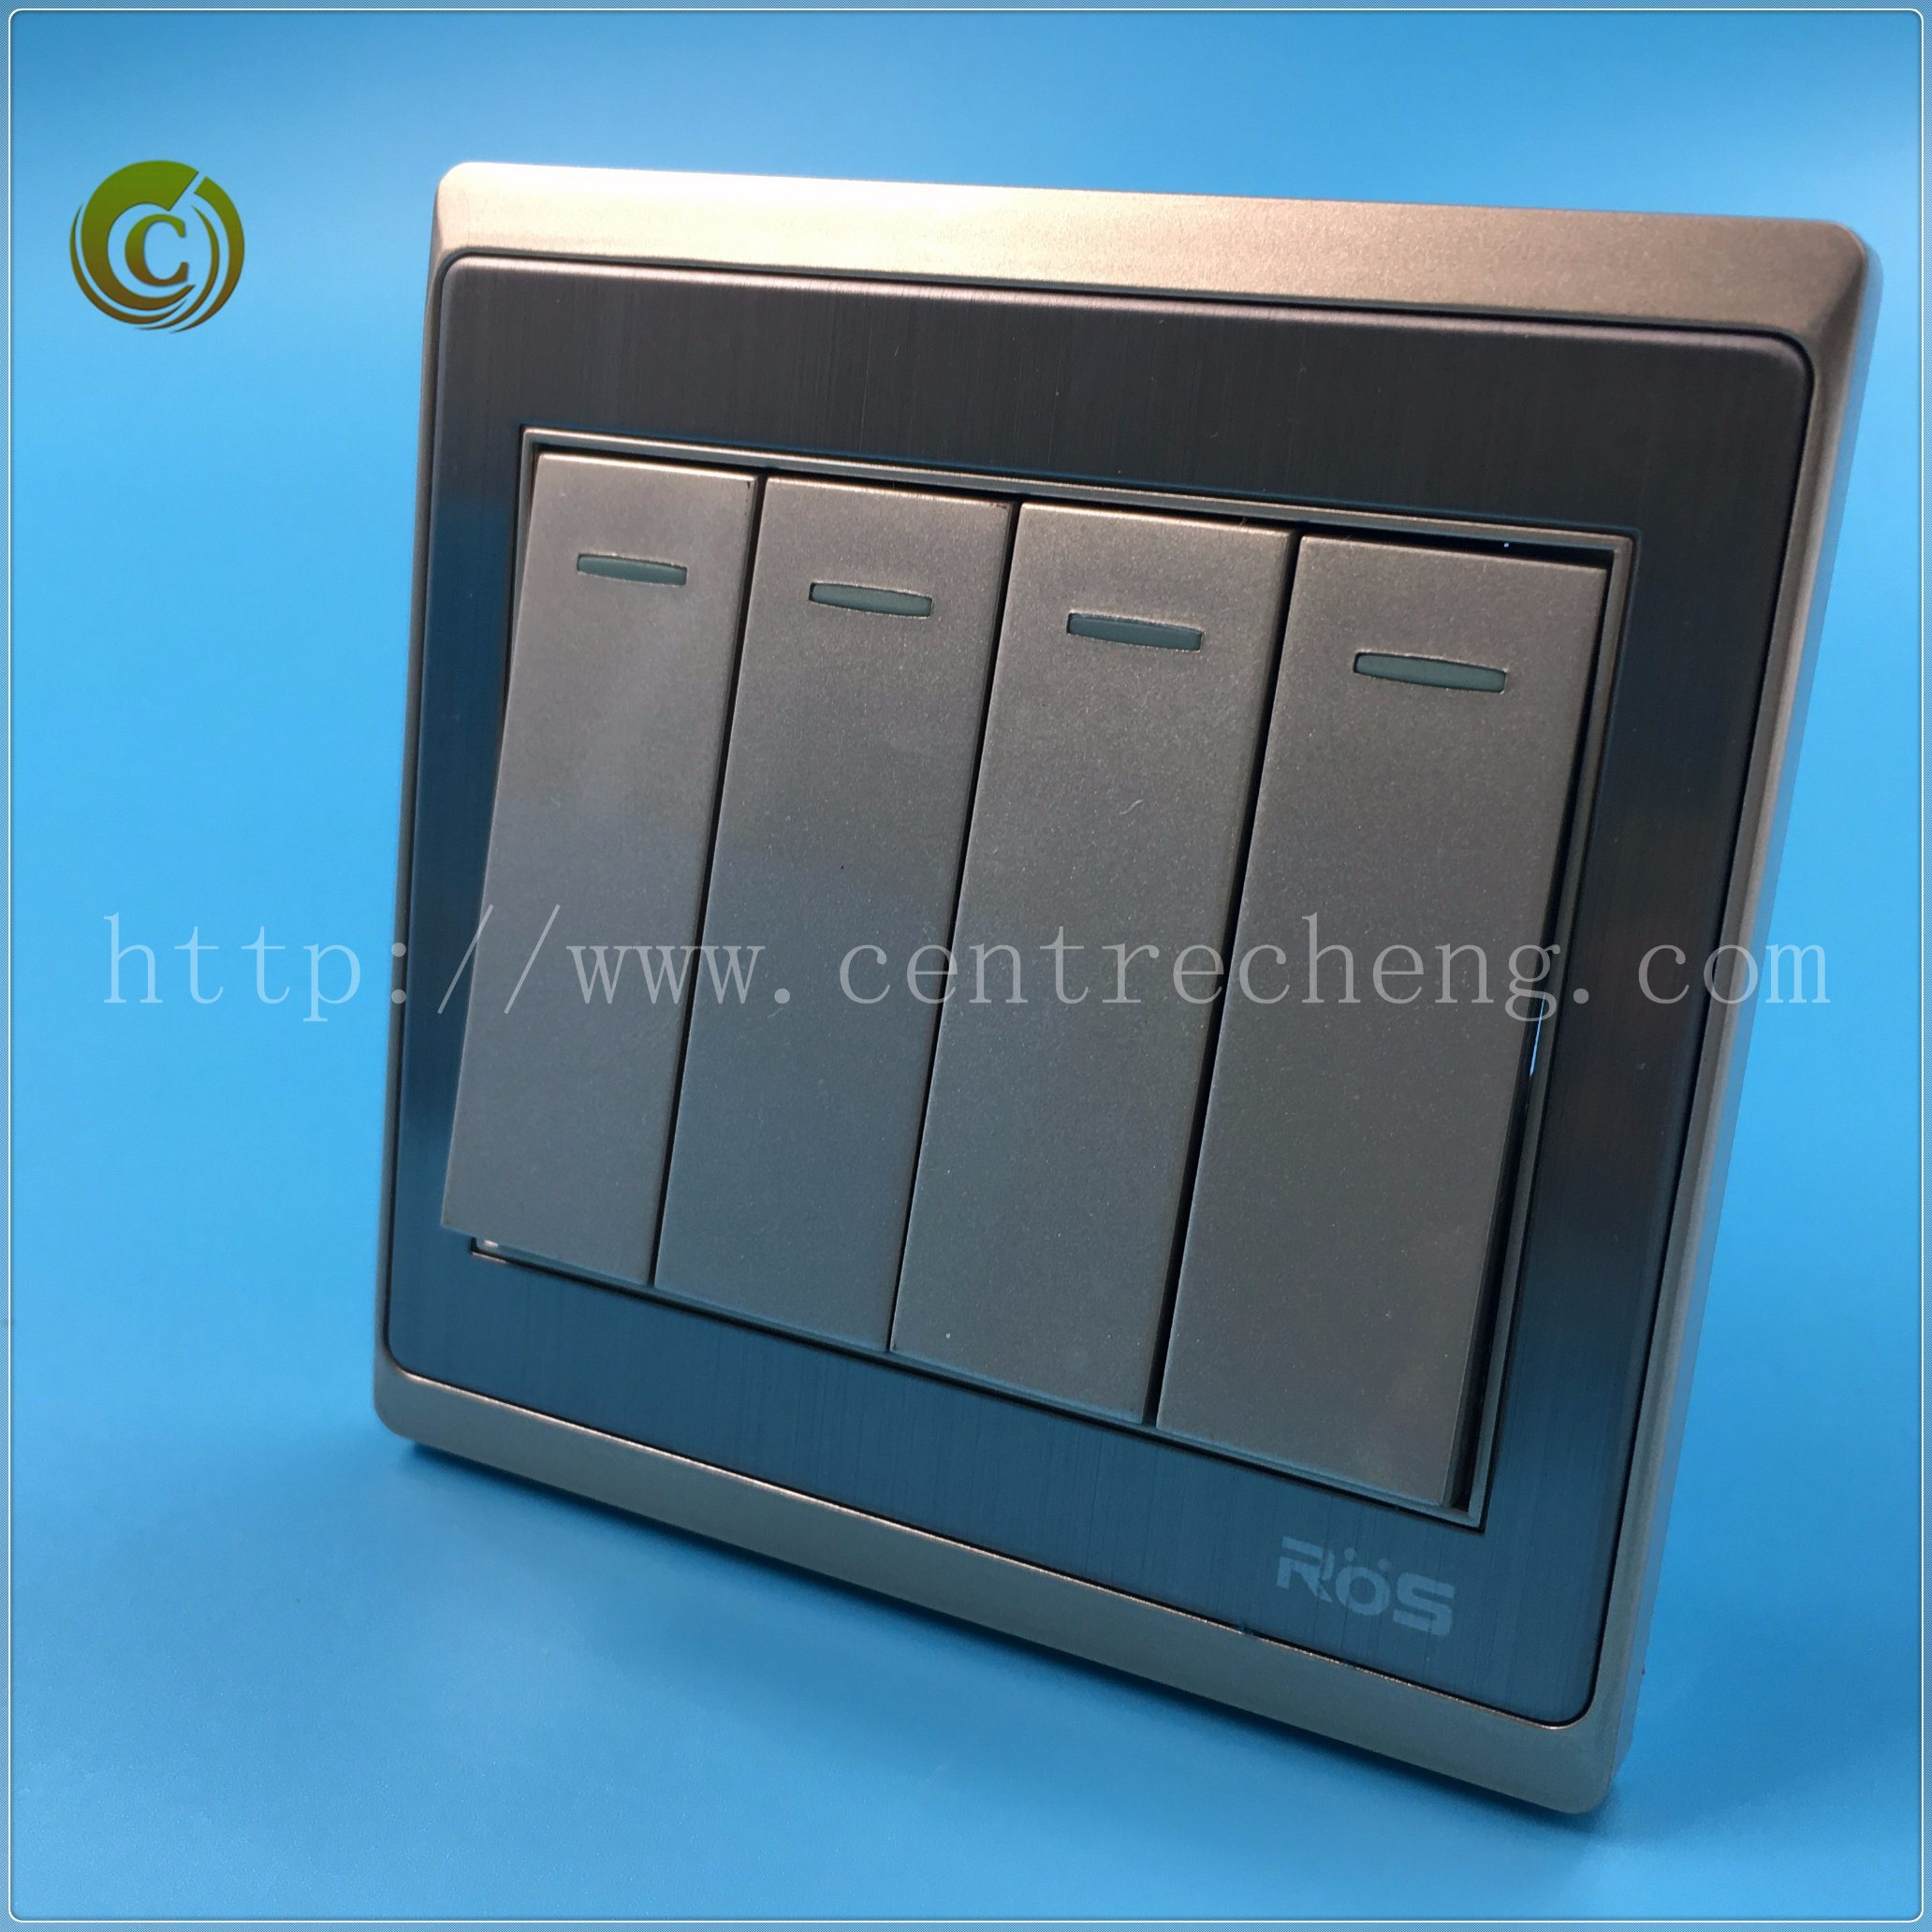 China 2018 High Quality 10a 4 Gang 1 Way 2 Plate Electric Wall Switch For Light